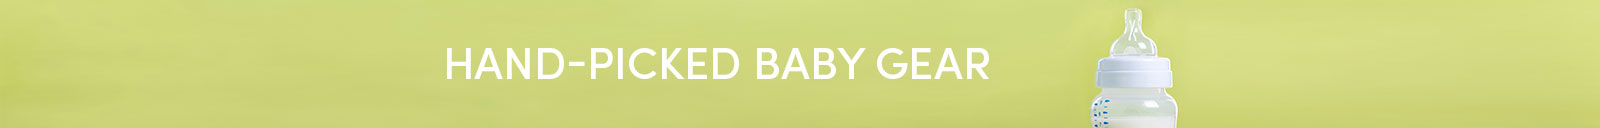 Baby Gear Department Banner